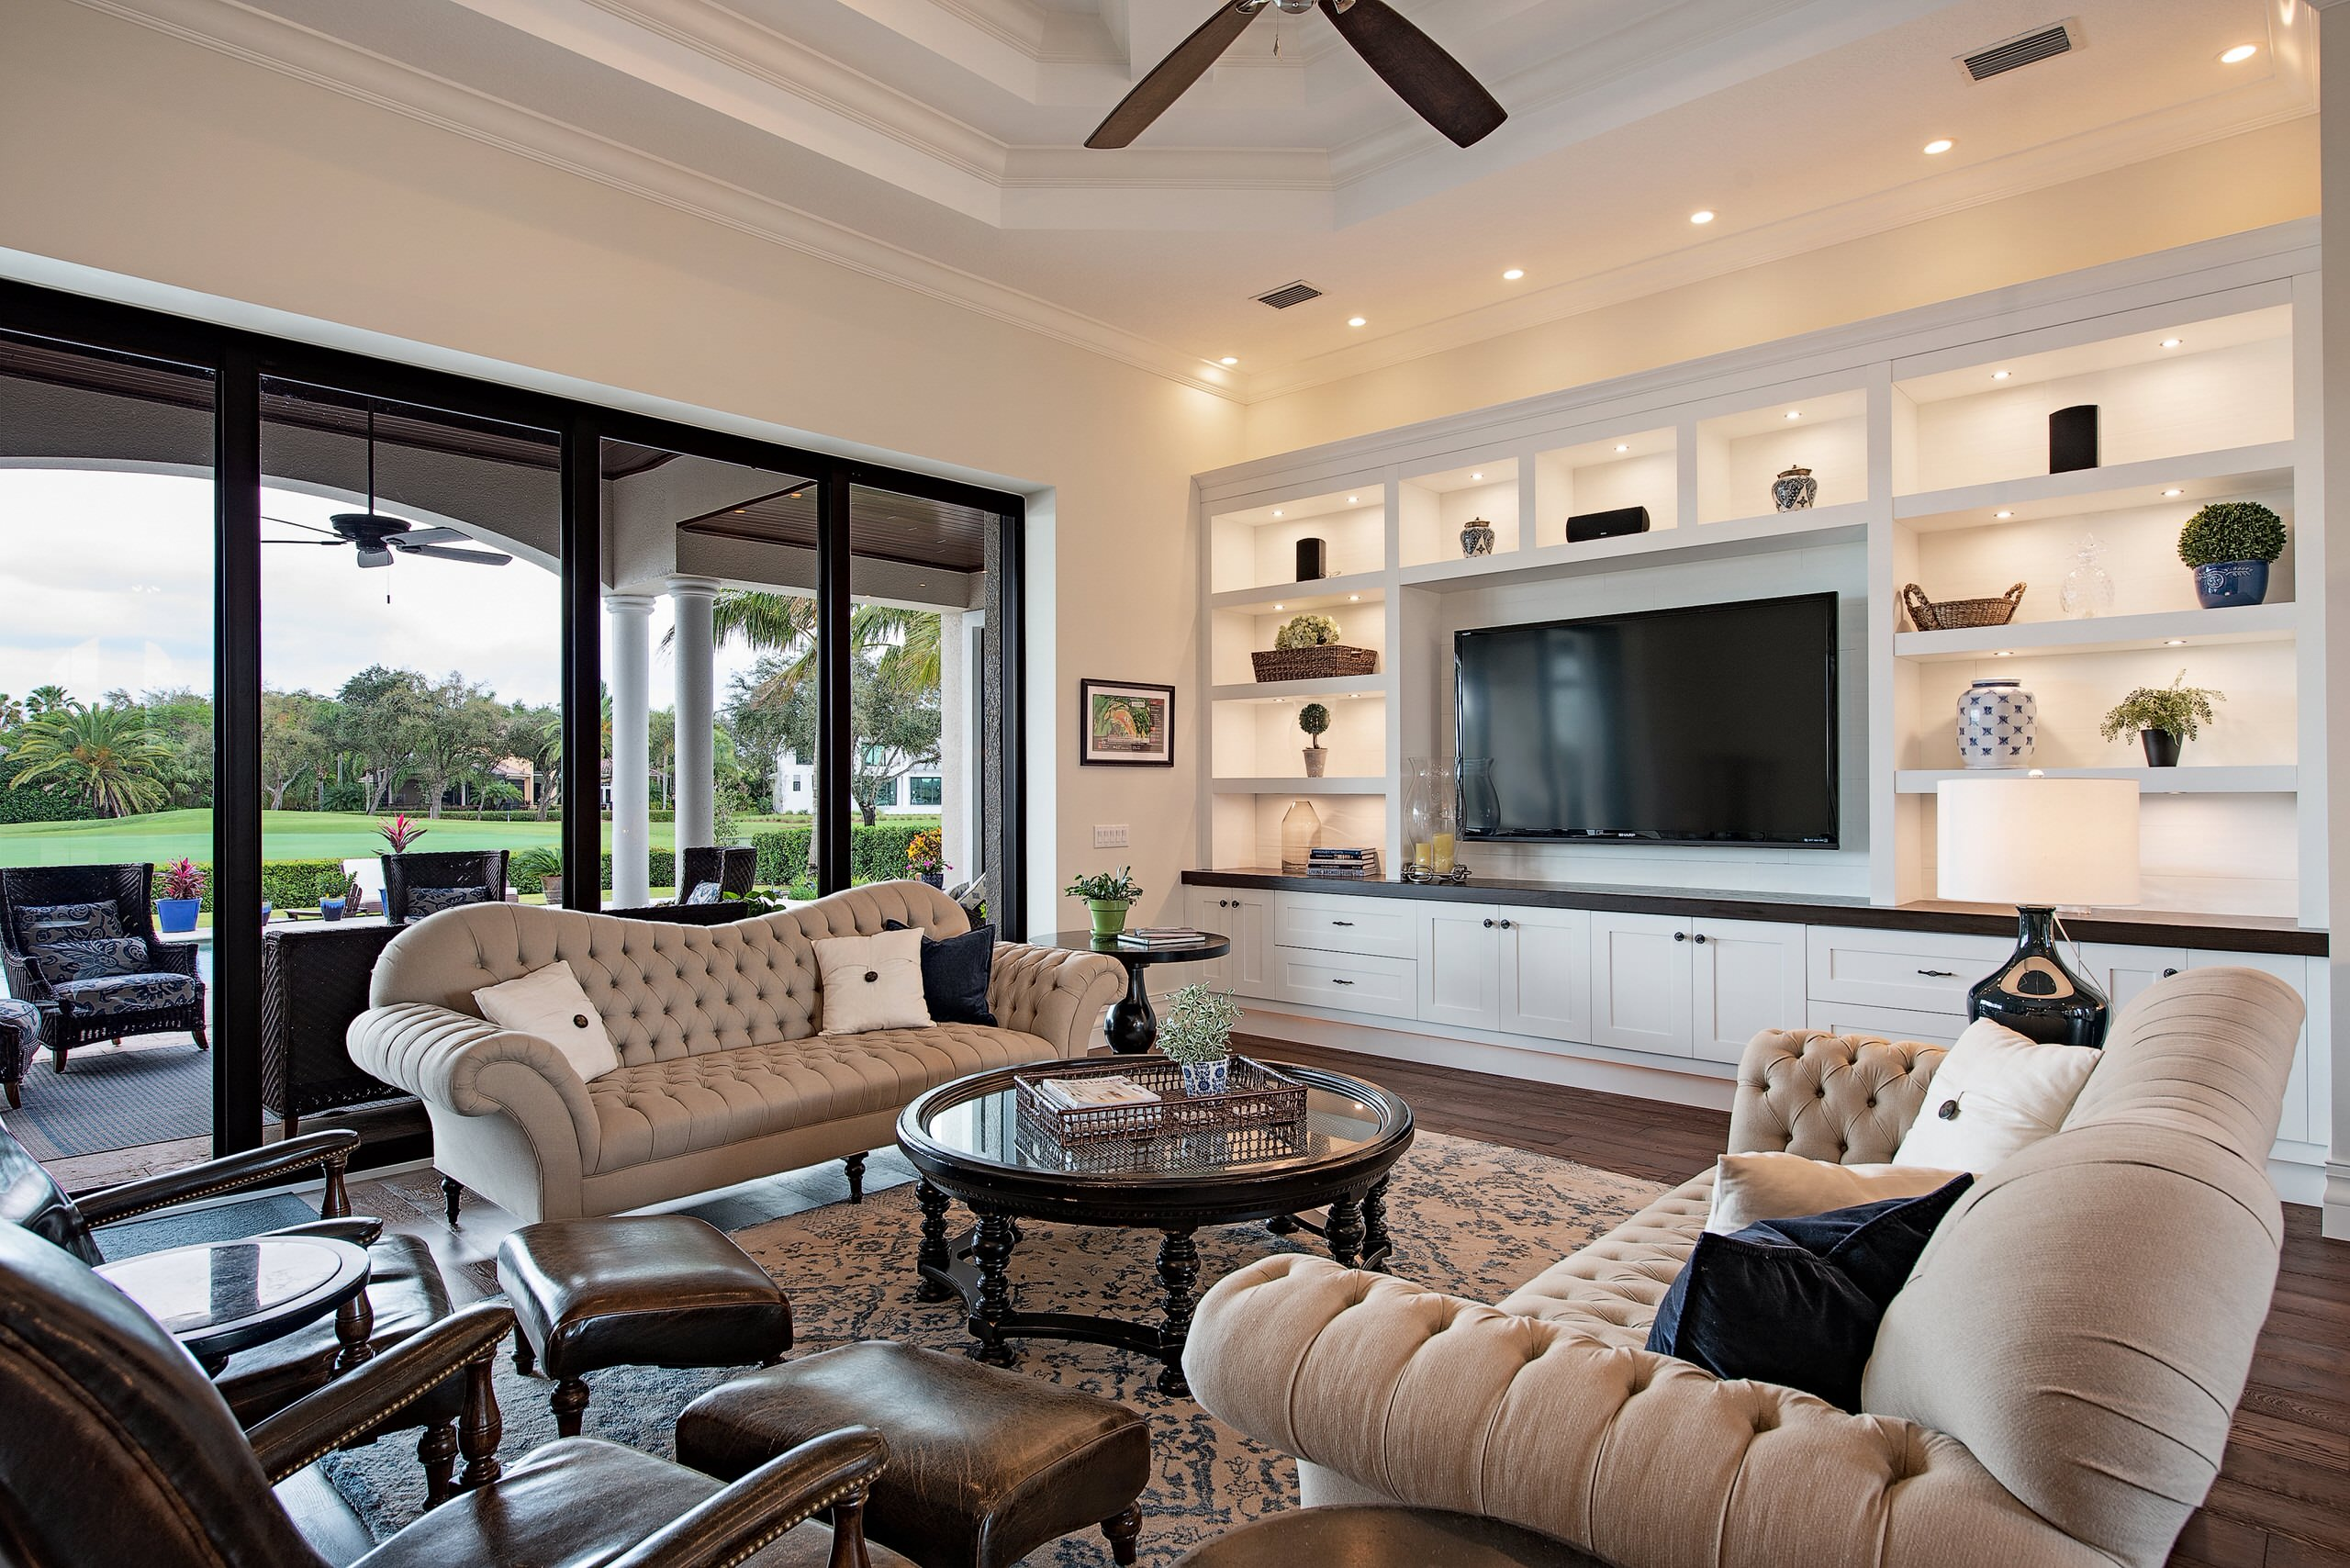 Certified Luxury Builders-41 West-Naples,FL-Quail Remodel 2A